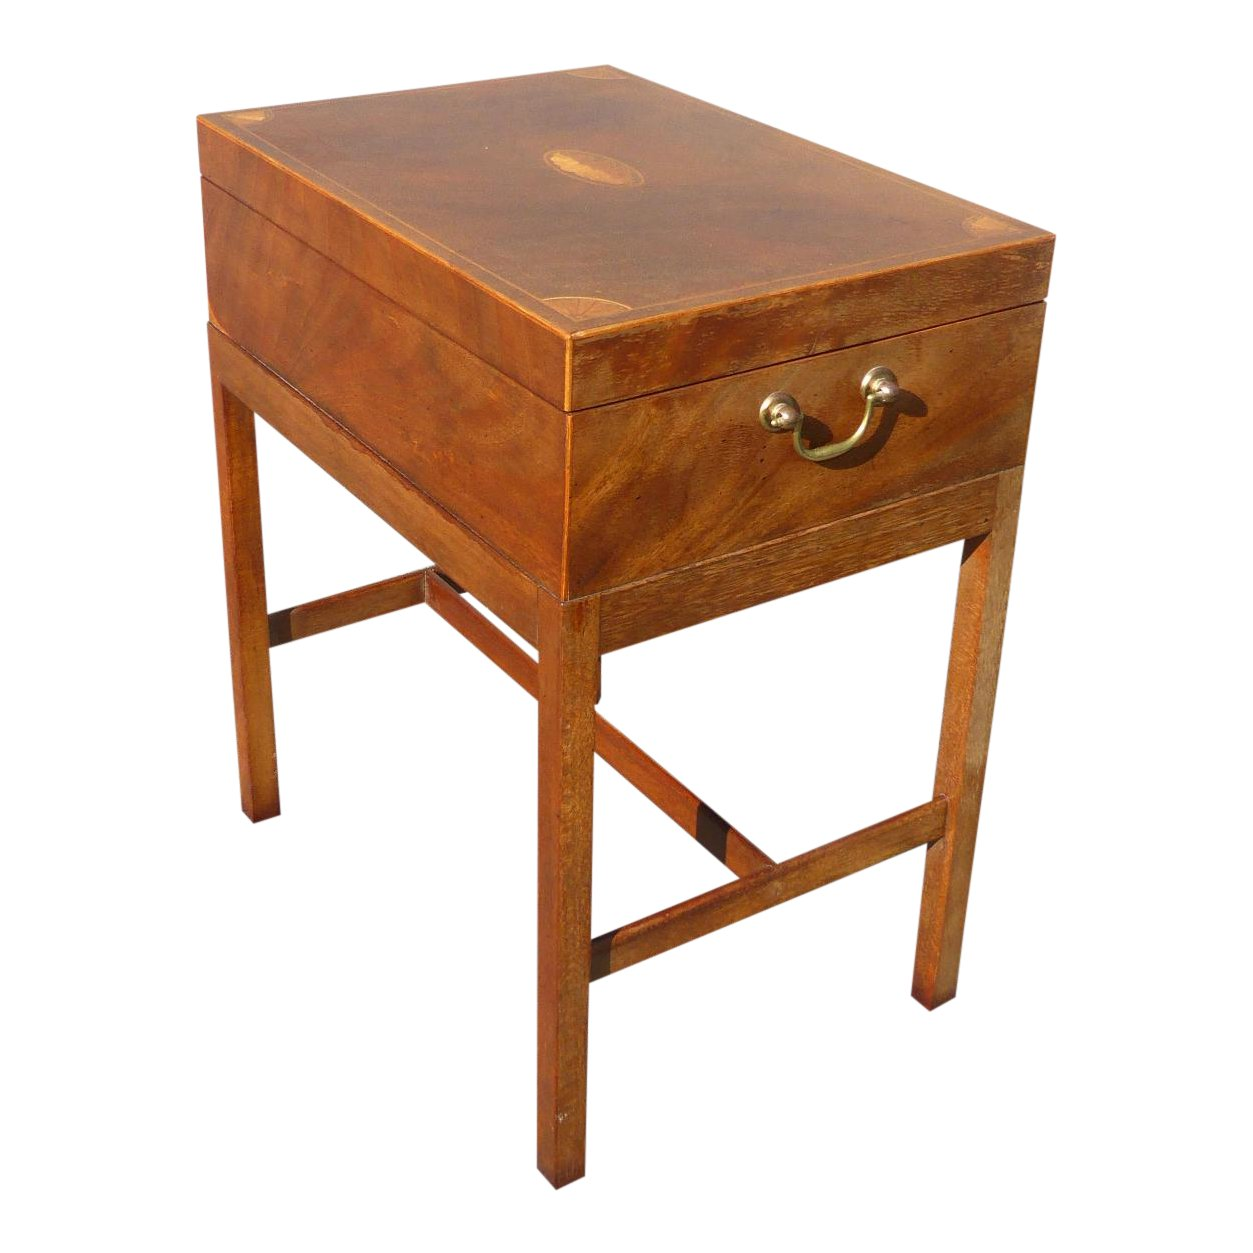 baker furniture company burl wood box accent table chairish small kitchen chairs marble top pub set nautical side wooden legs and bases round outdoor tablecloth large drop leaf